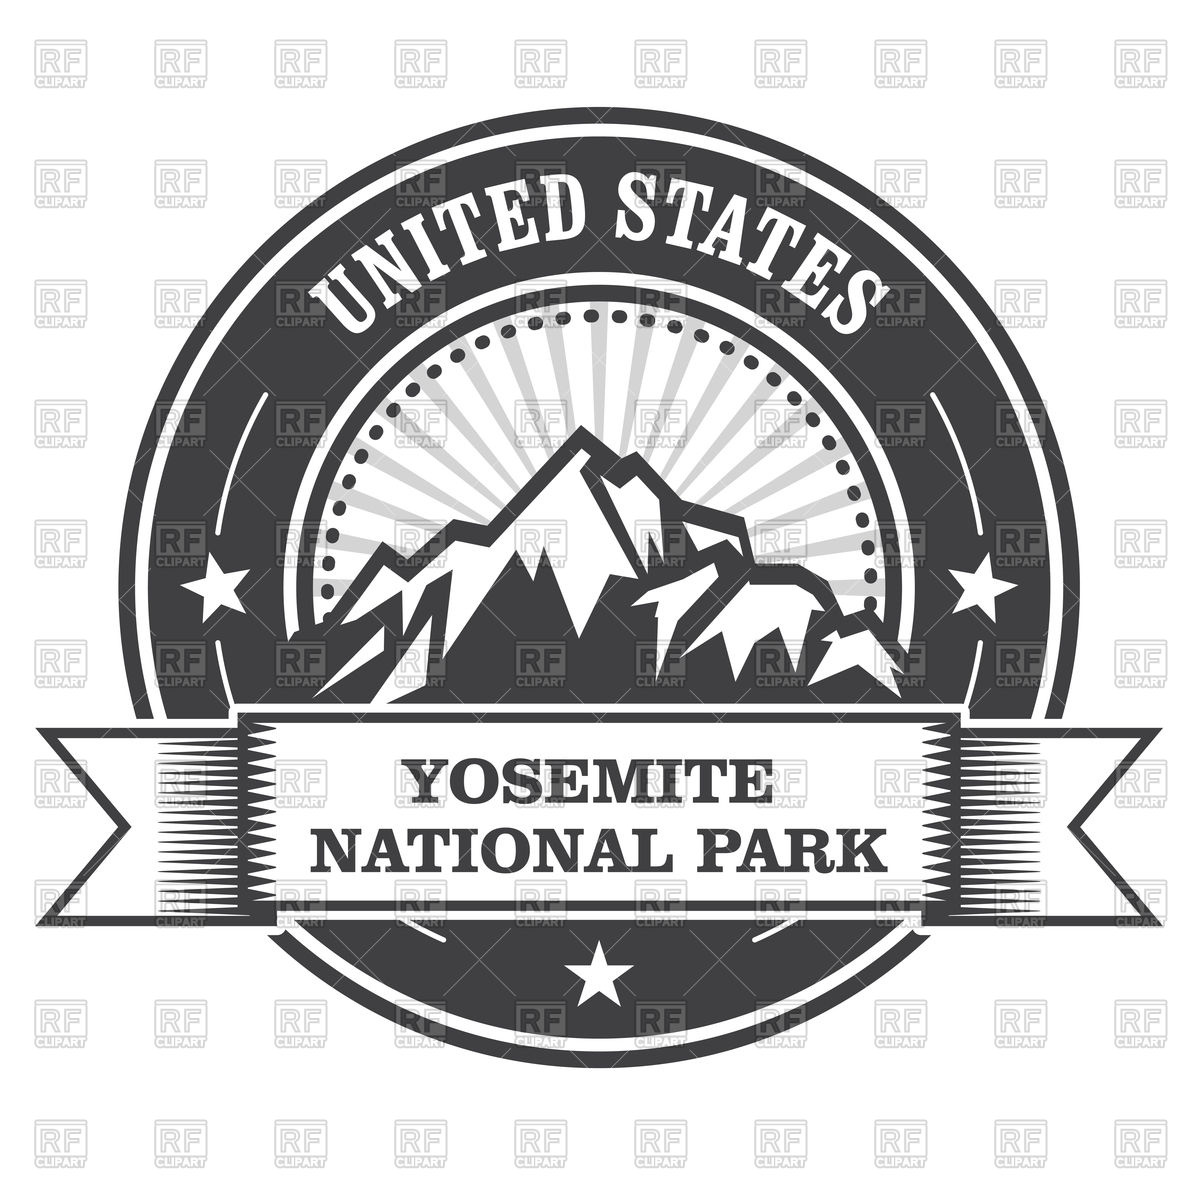 1200x1200 Yosemite National Park Round Stamp With Mountains Vector Image